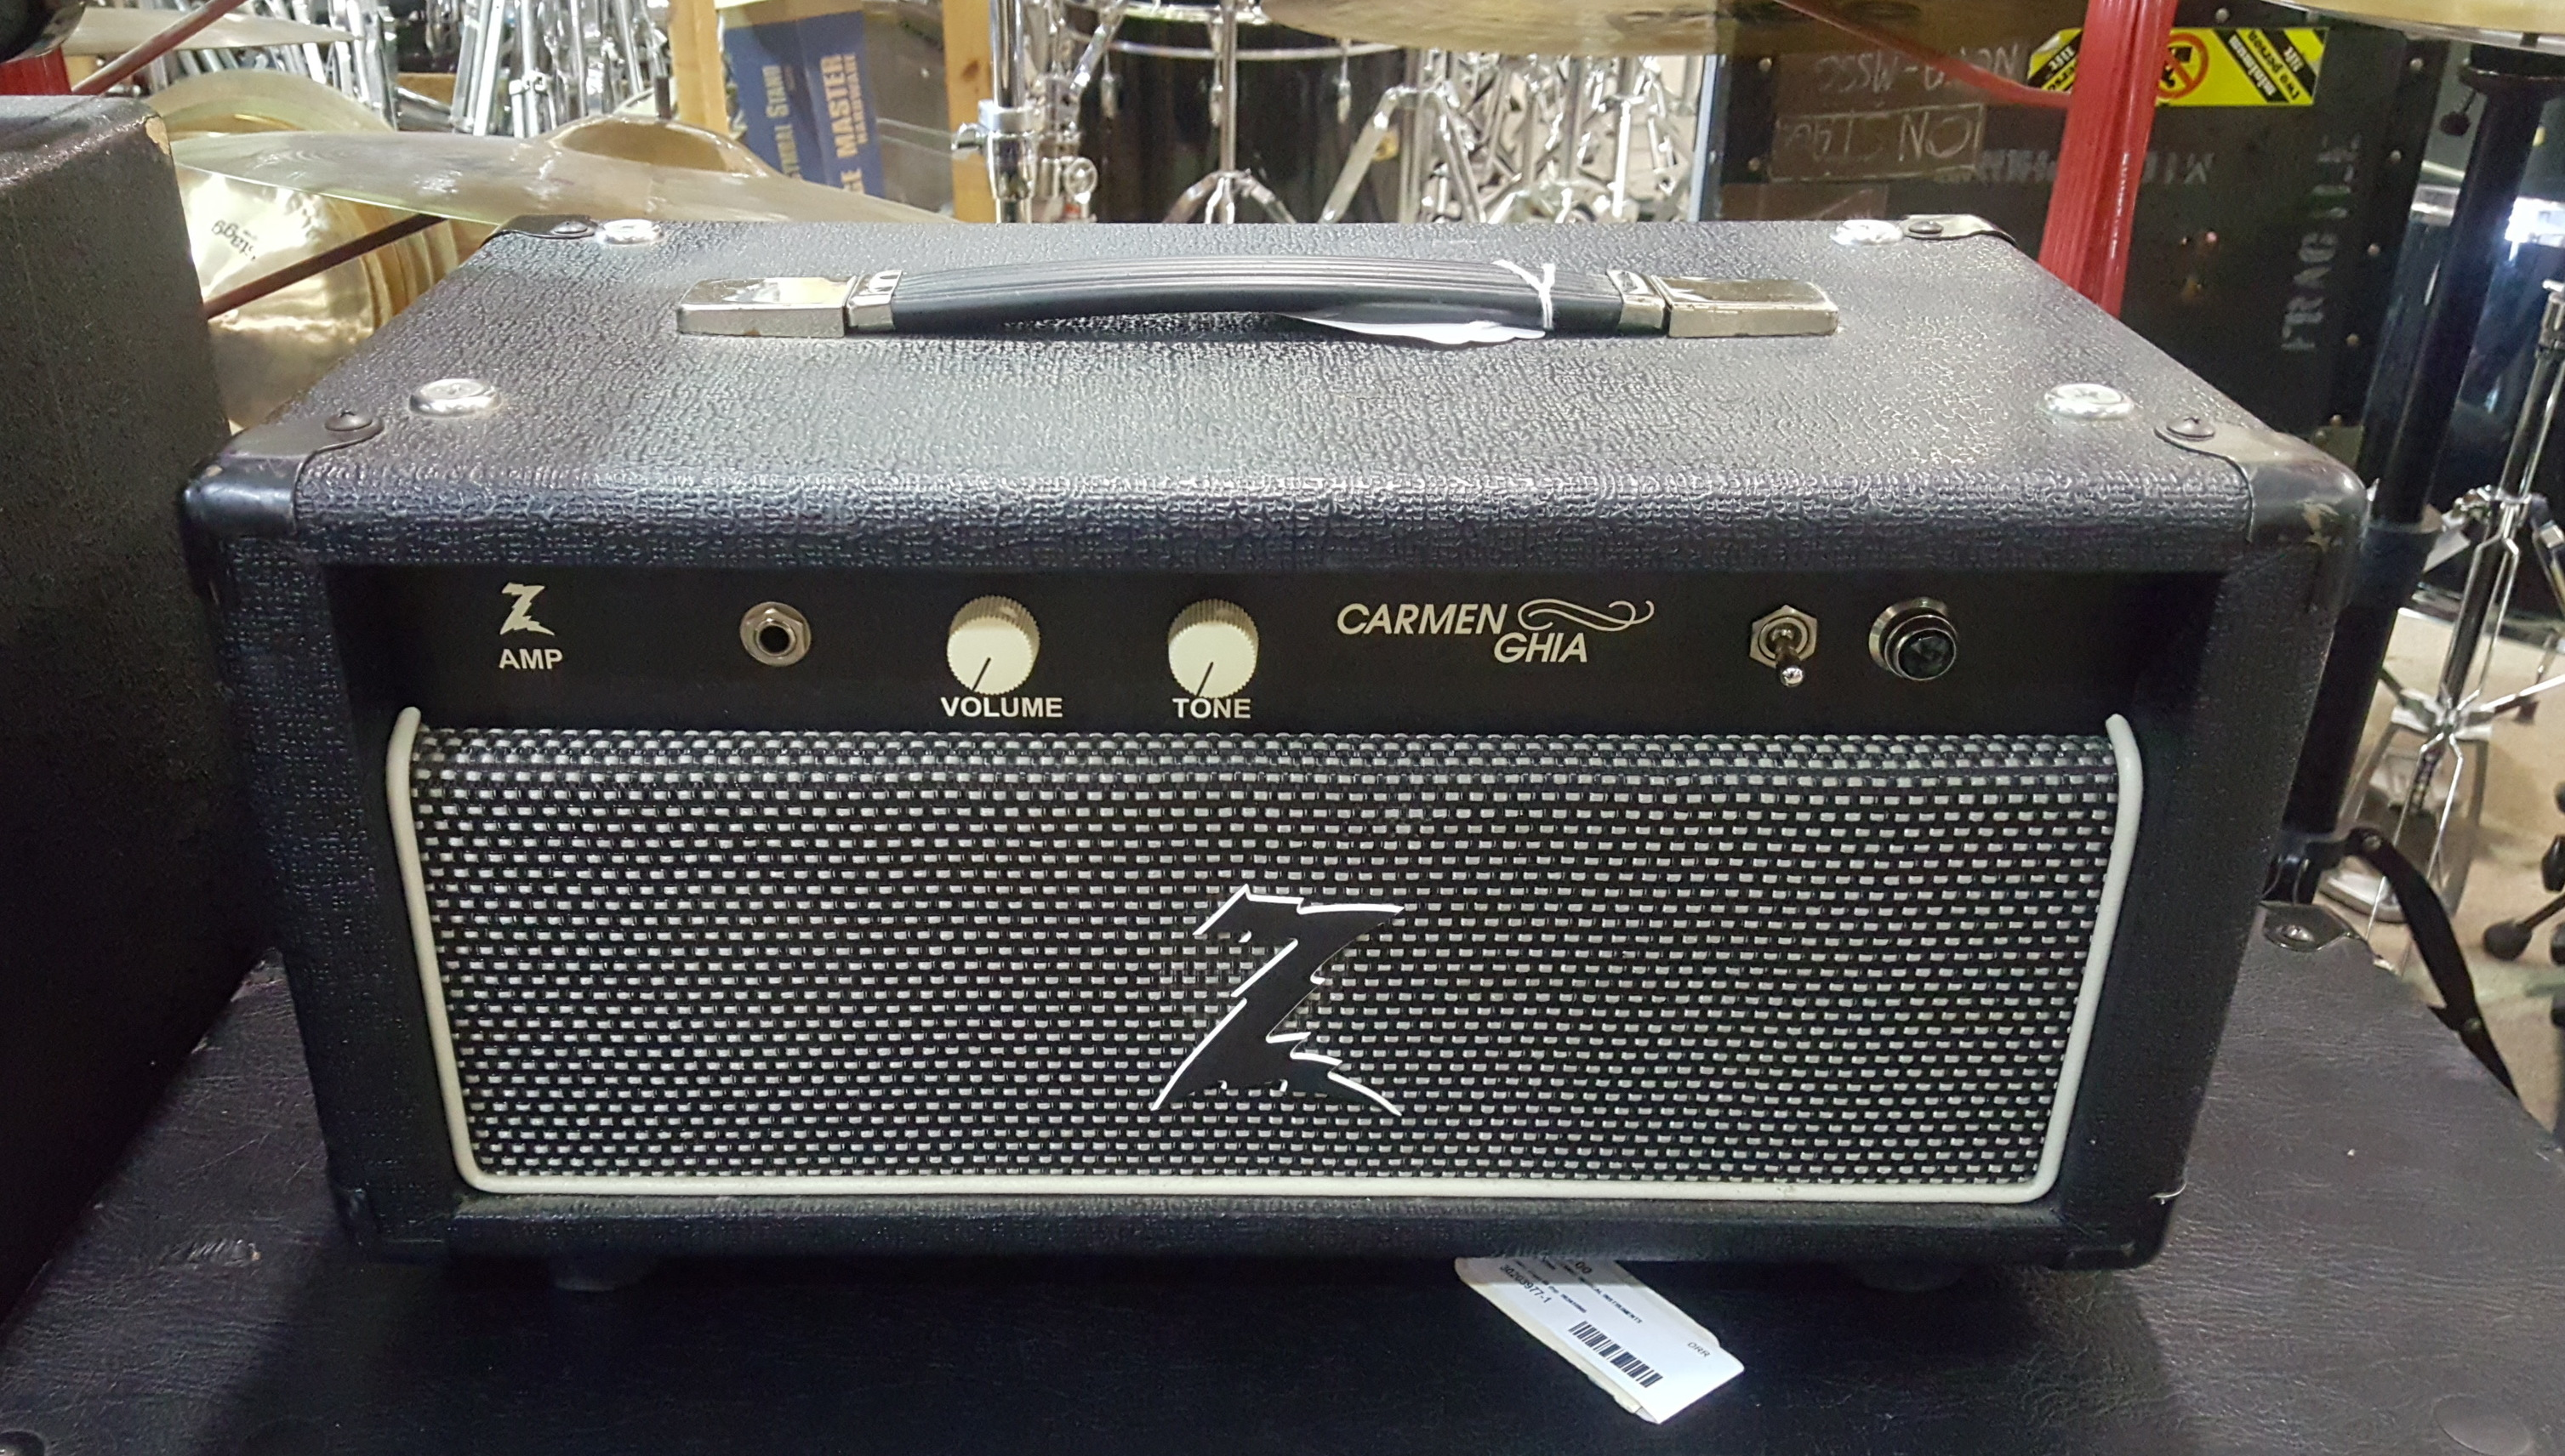 DR. Z CARMEN GHIA 18W Tube Guitar Amp Head - LOCAL PICKUP ONLY!